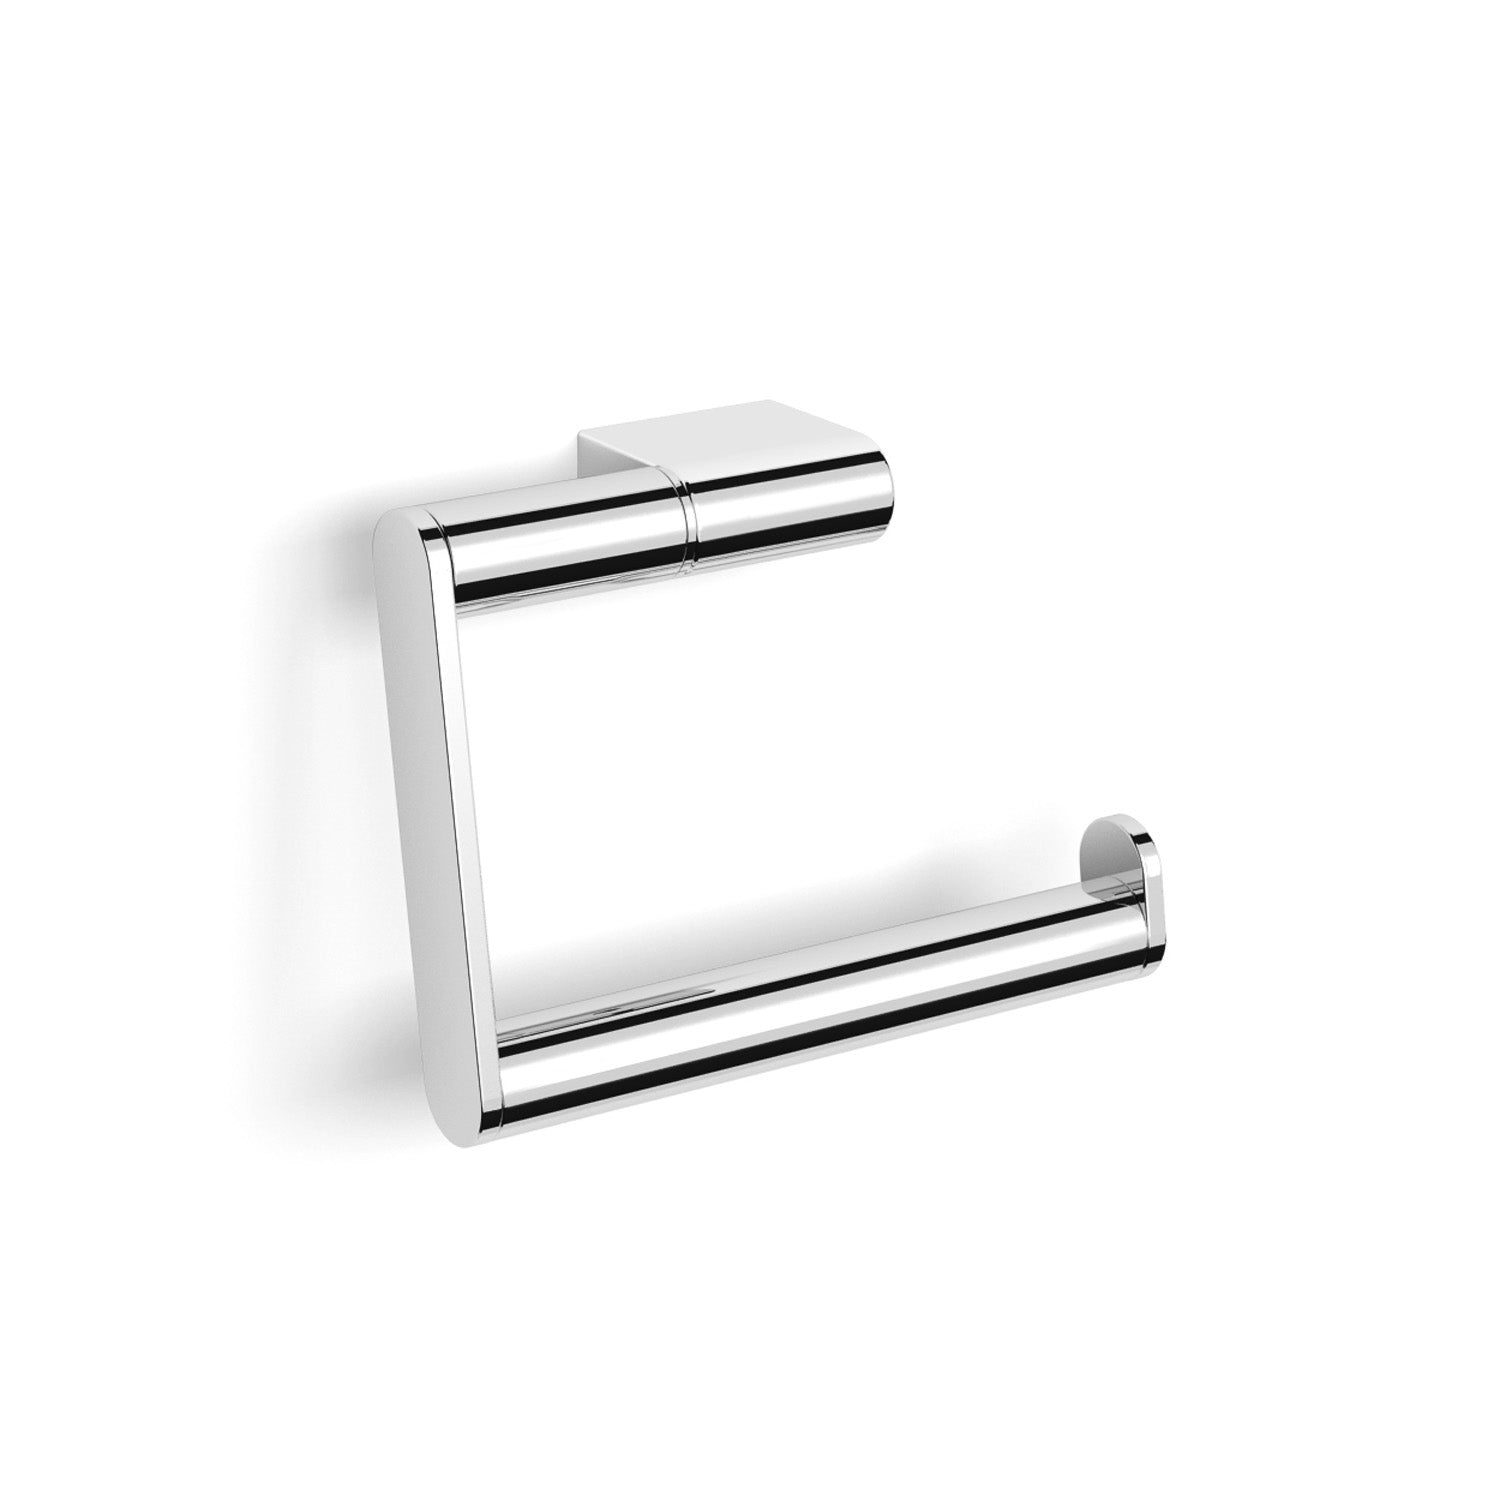 Hinged Modale Toilet Roll Holder with a chrome finish and no cover on a white background